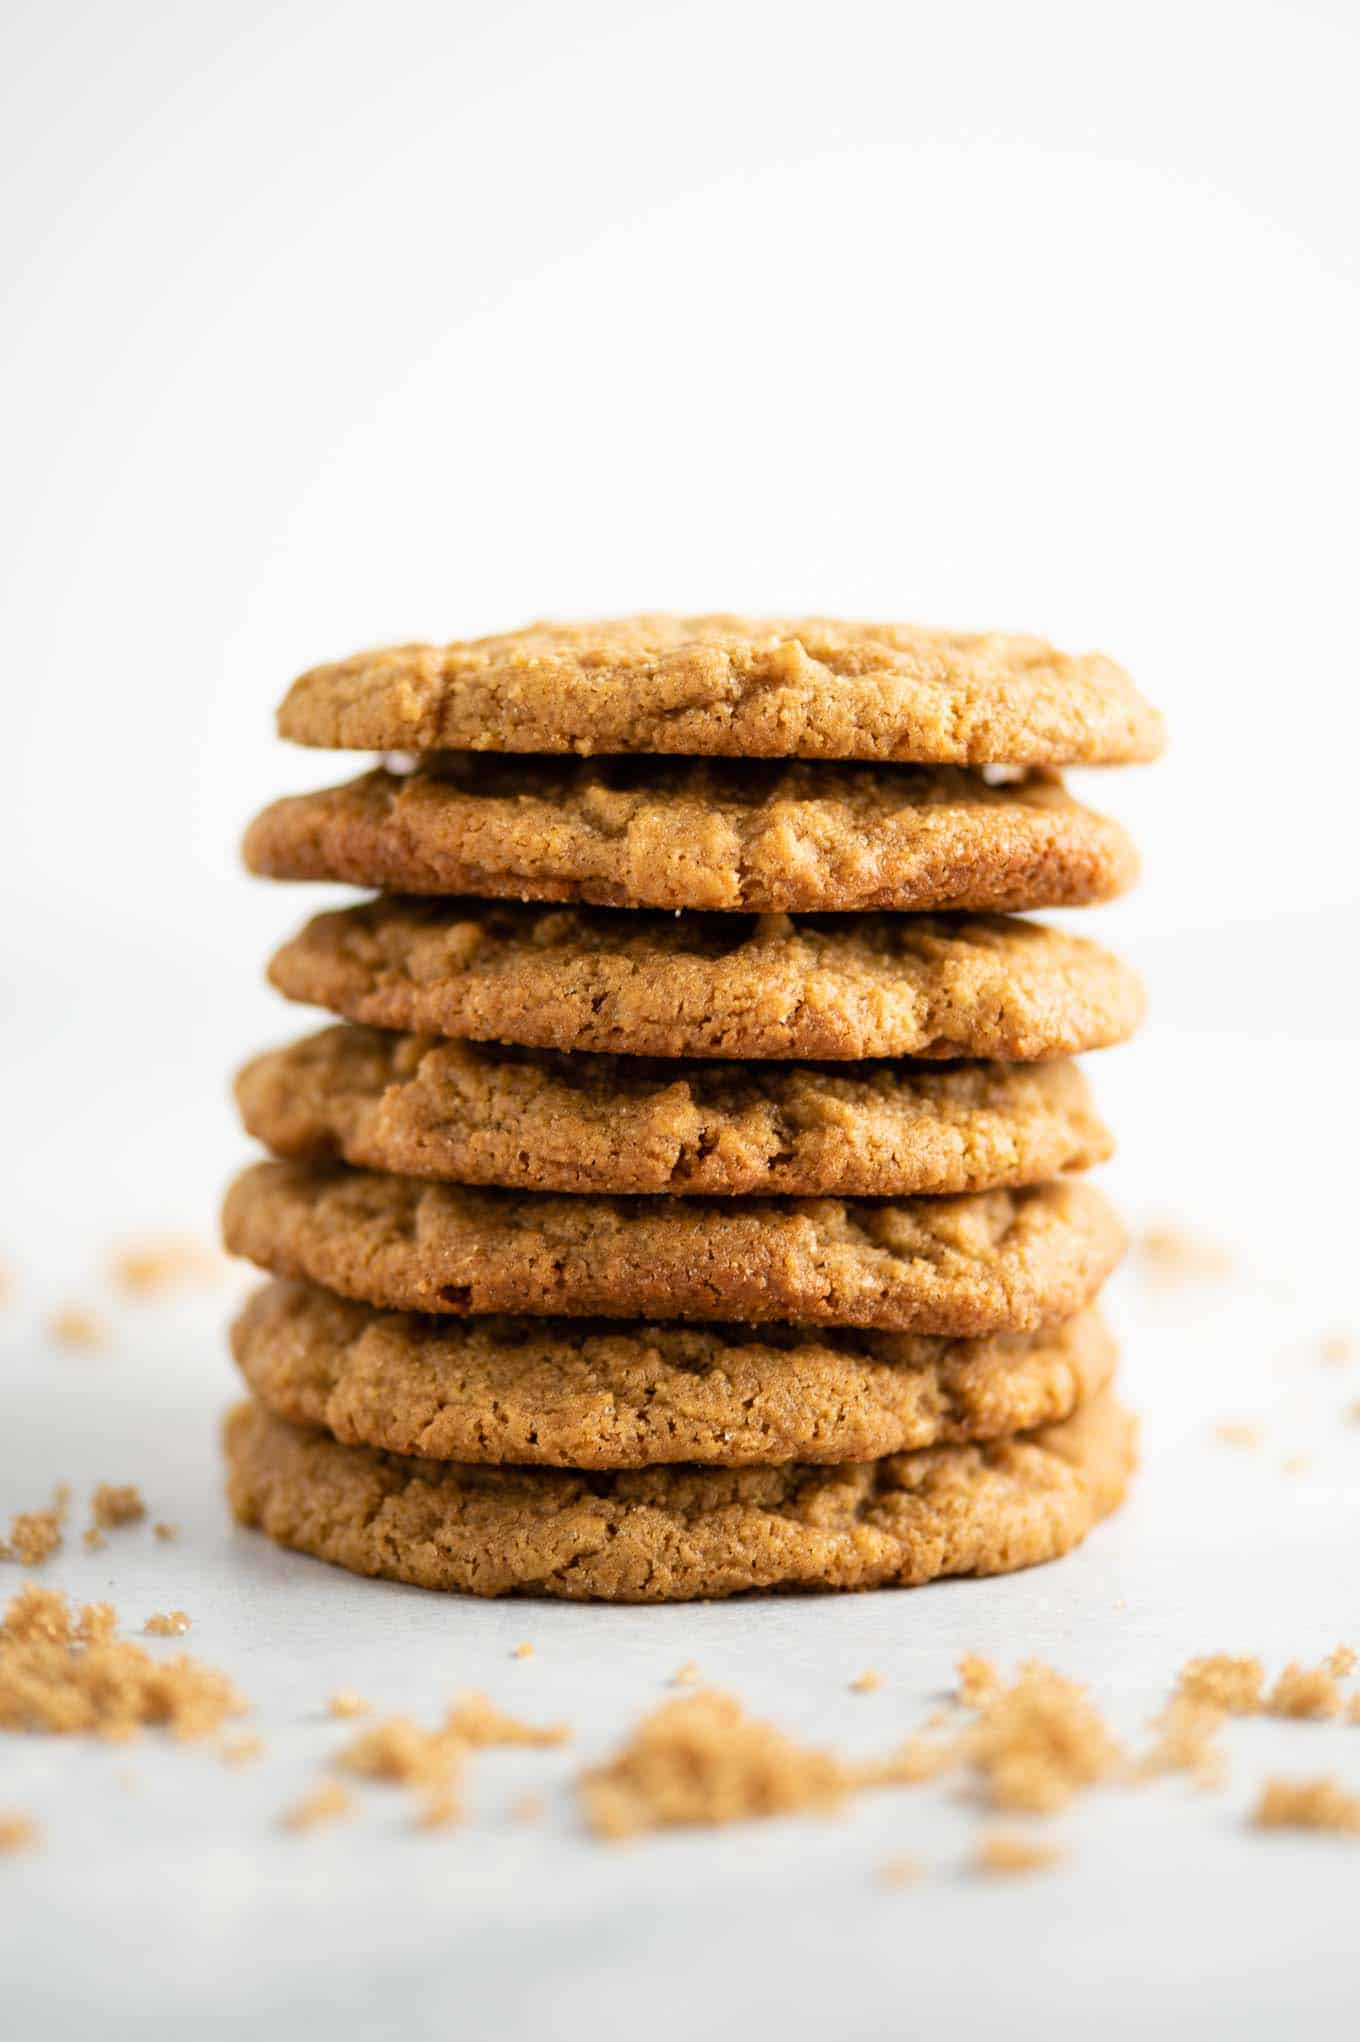 7 peanut butter cookies stacked